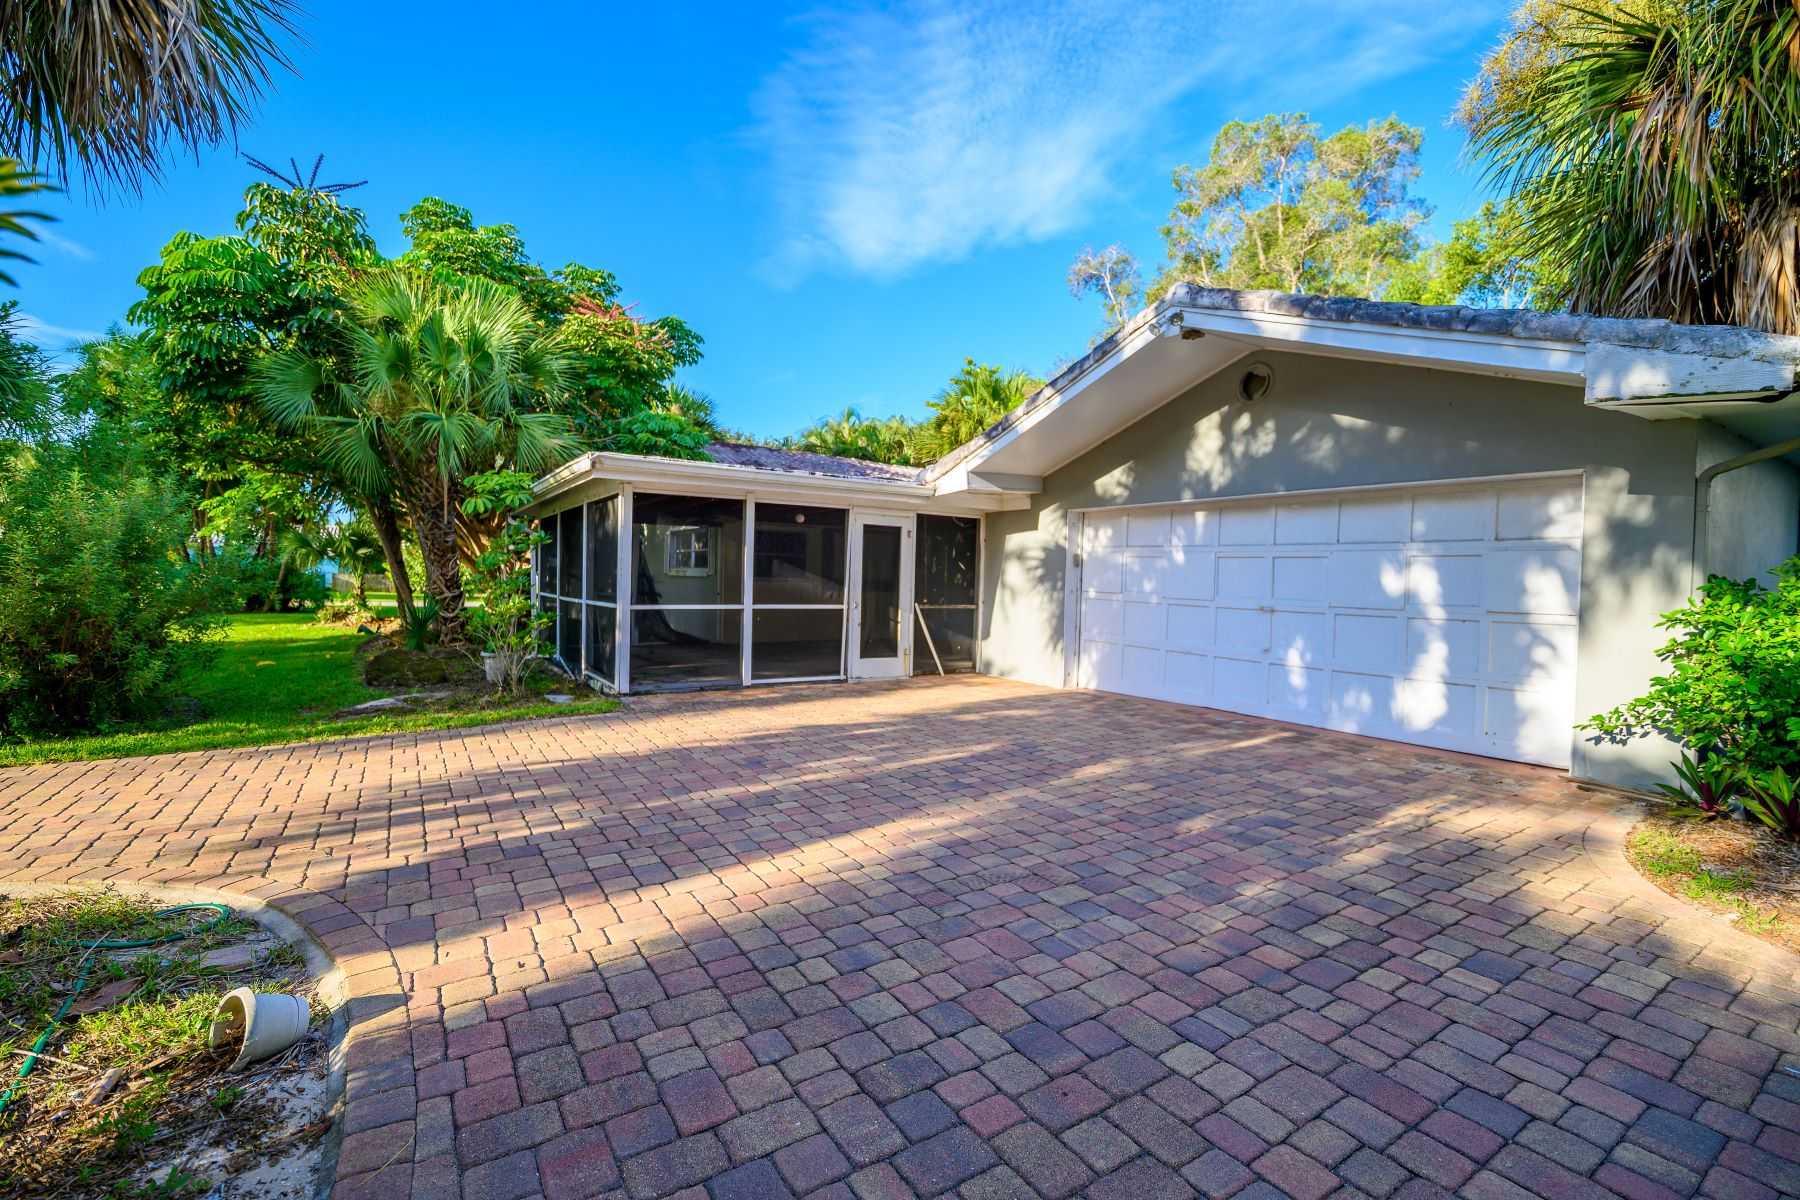 Single Family Homes for Sale at Prime Location in The Town of Melbourne Beach 500 First Avenue Melbourne Beach, Florida 32951 United States